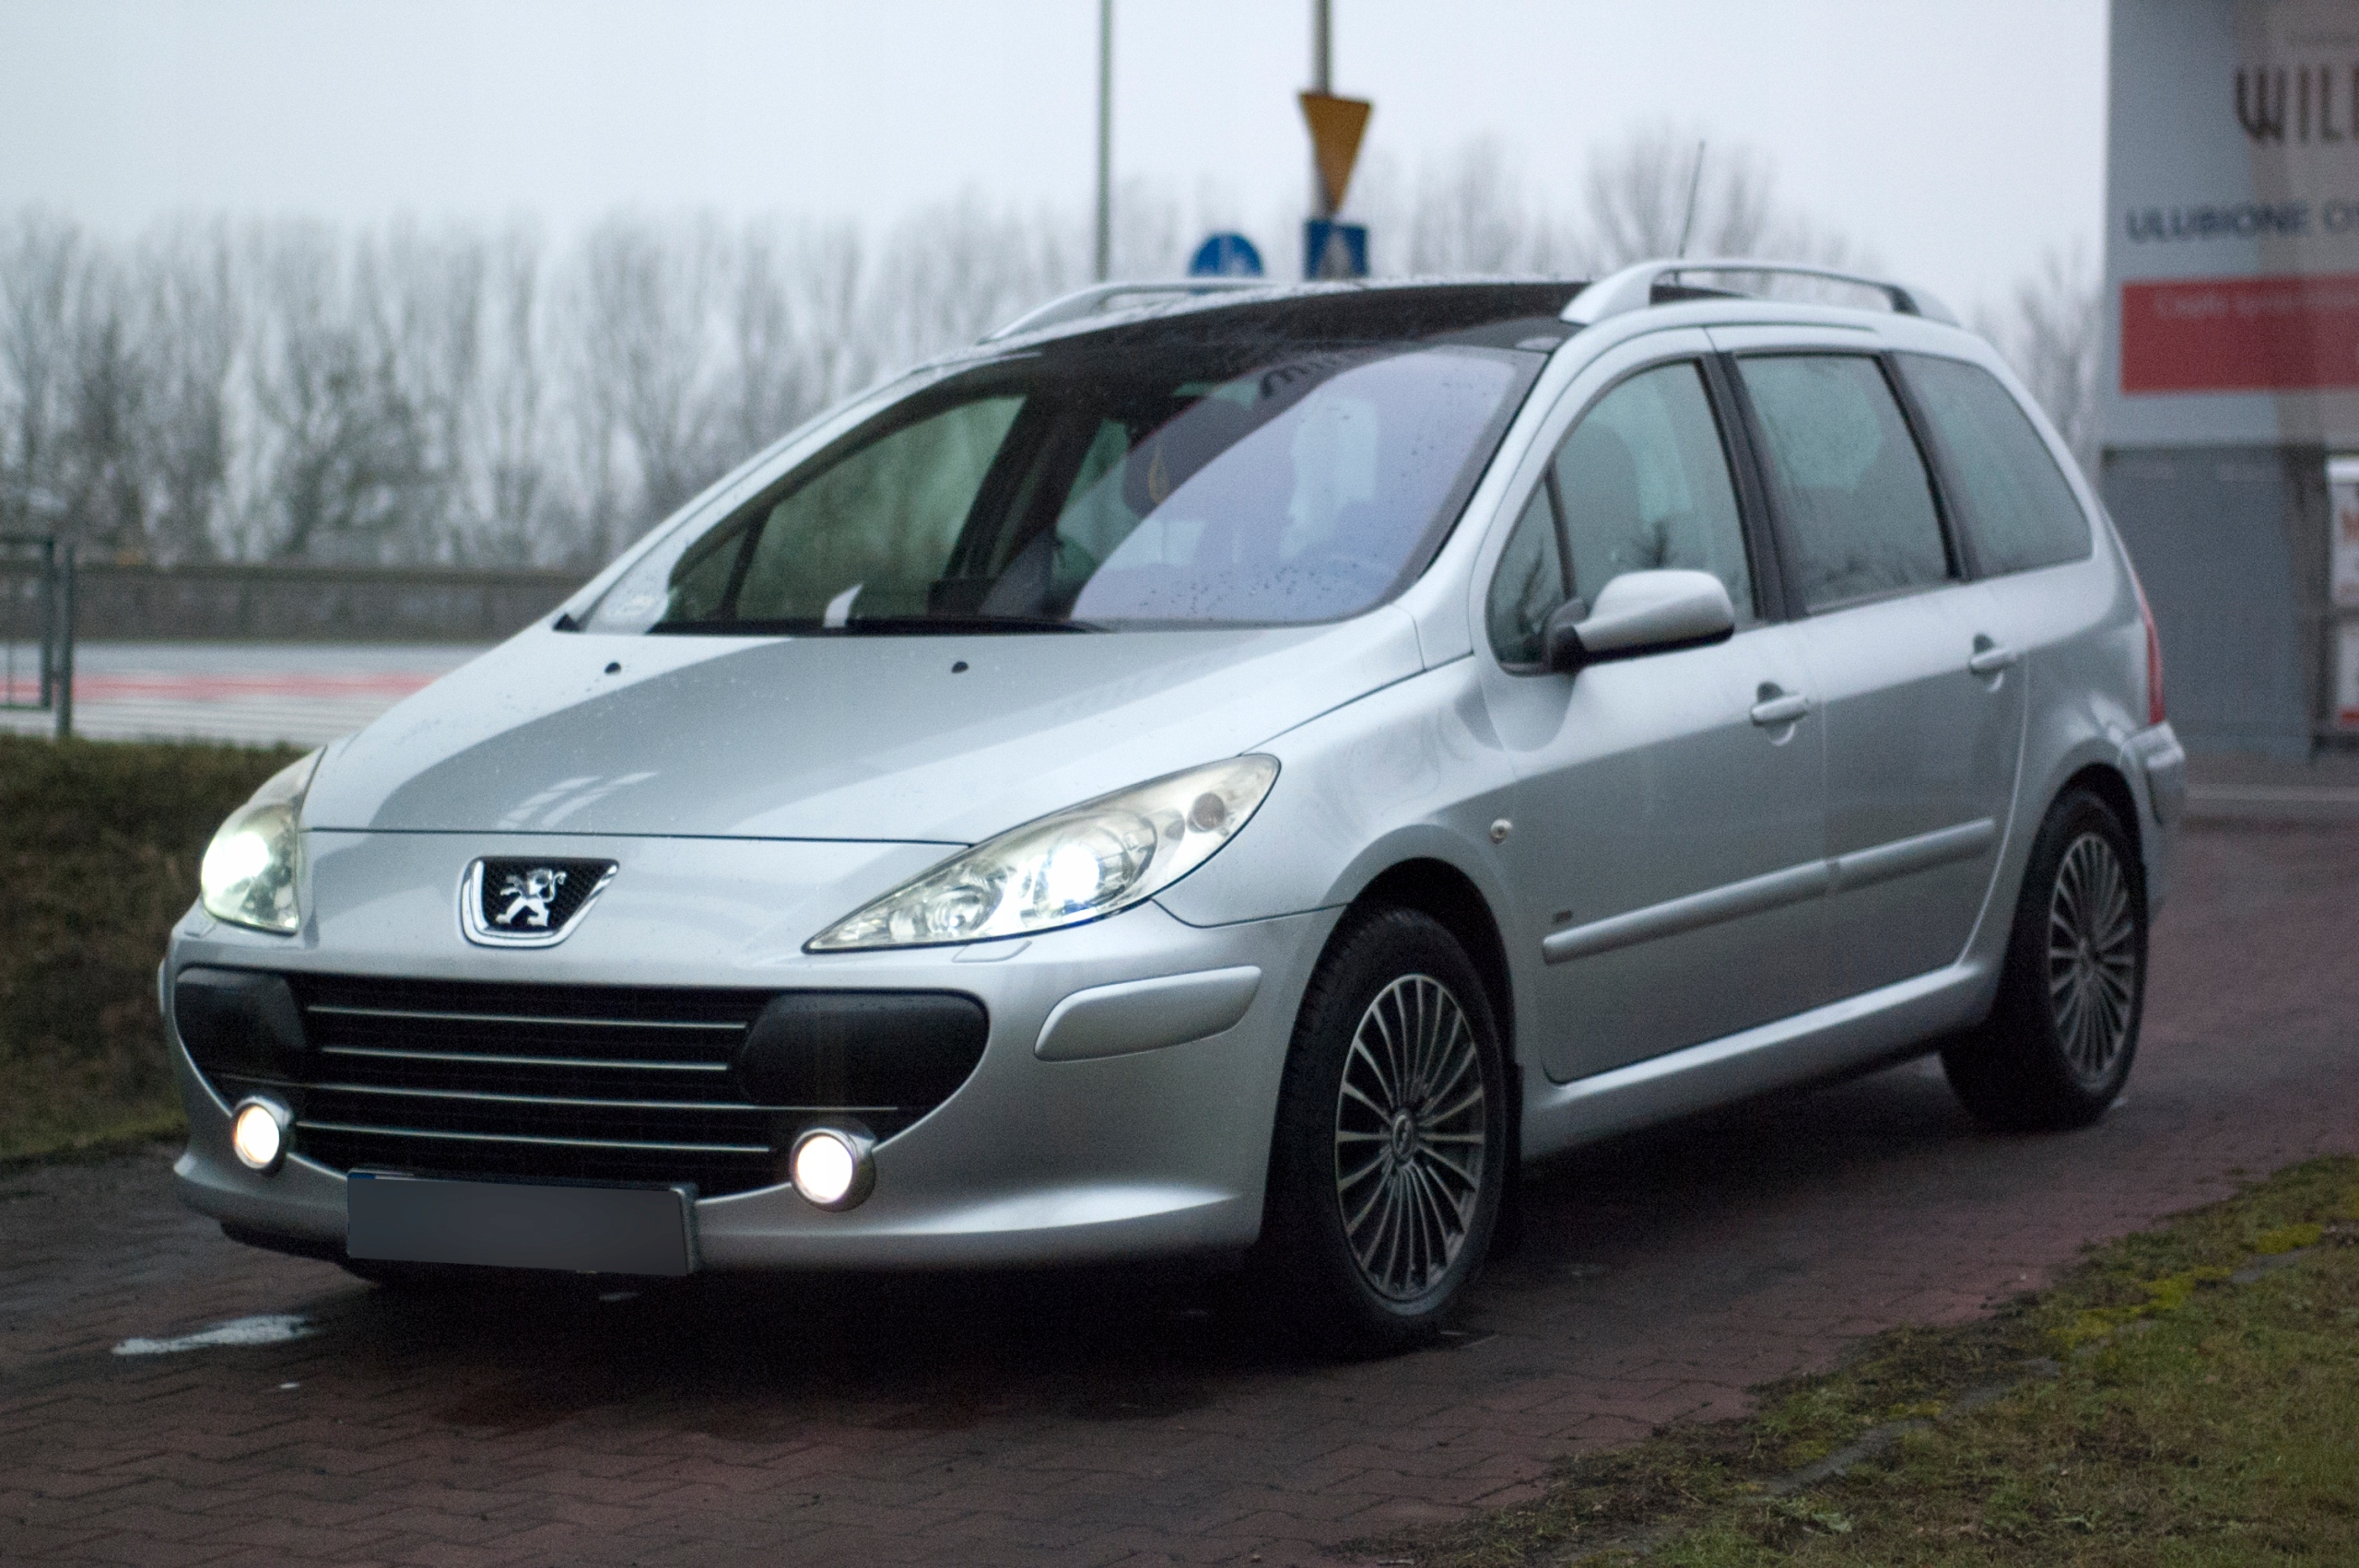 Peugeot 307SW, 2006r, 1,6HDI, 120KM, exclusive